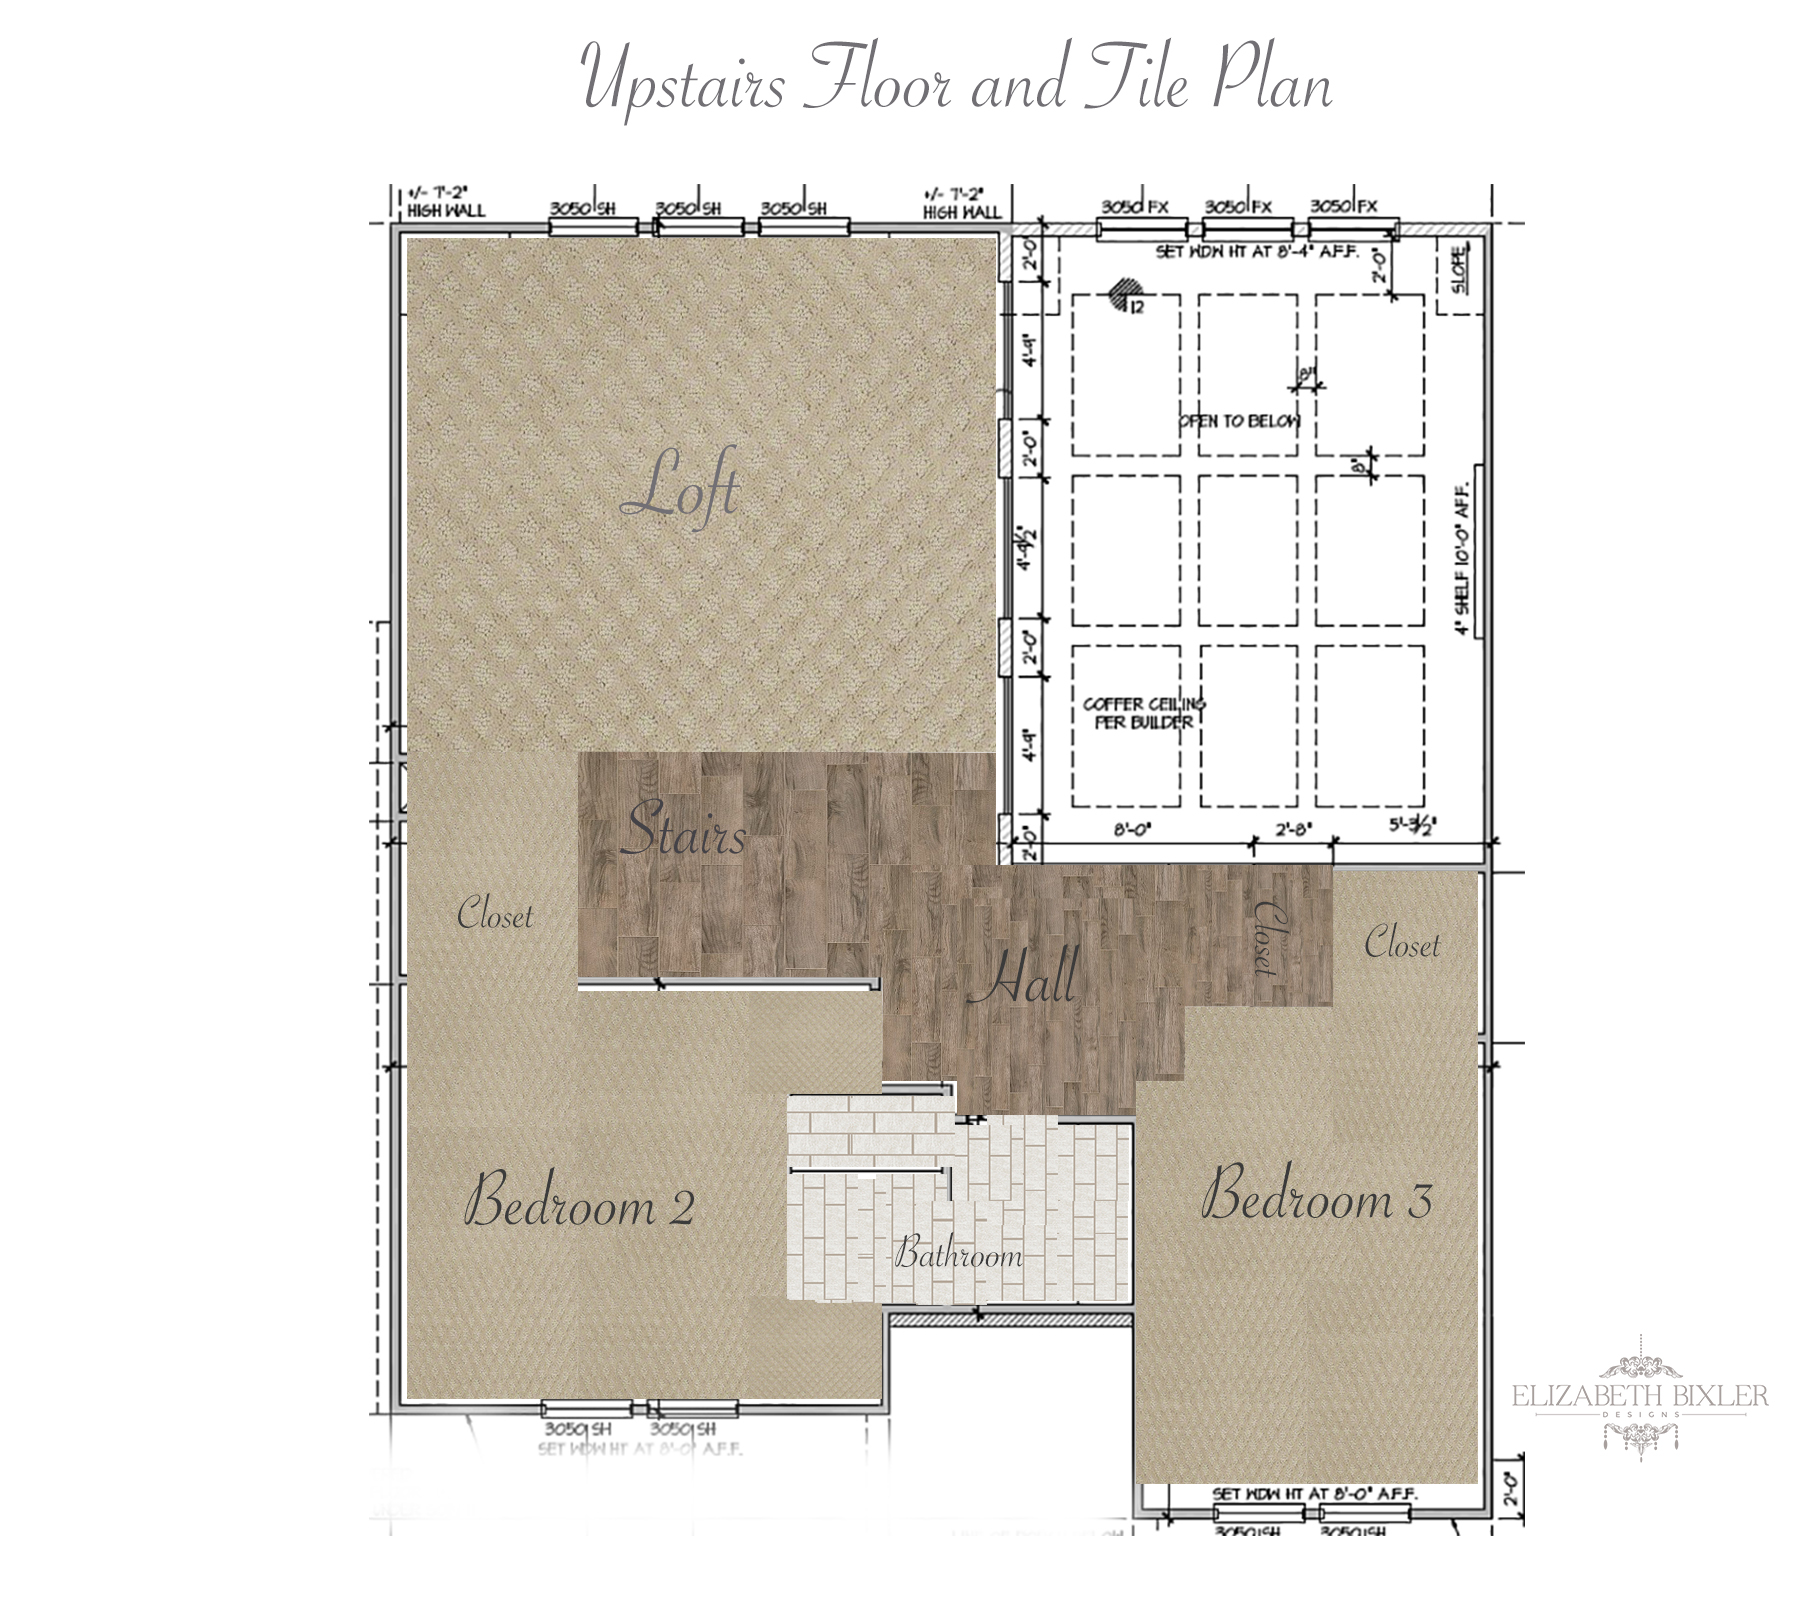 How to plan floor tile layout